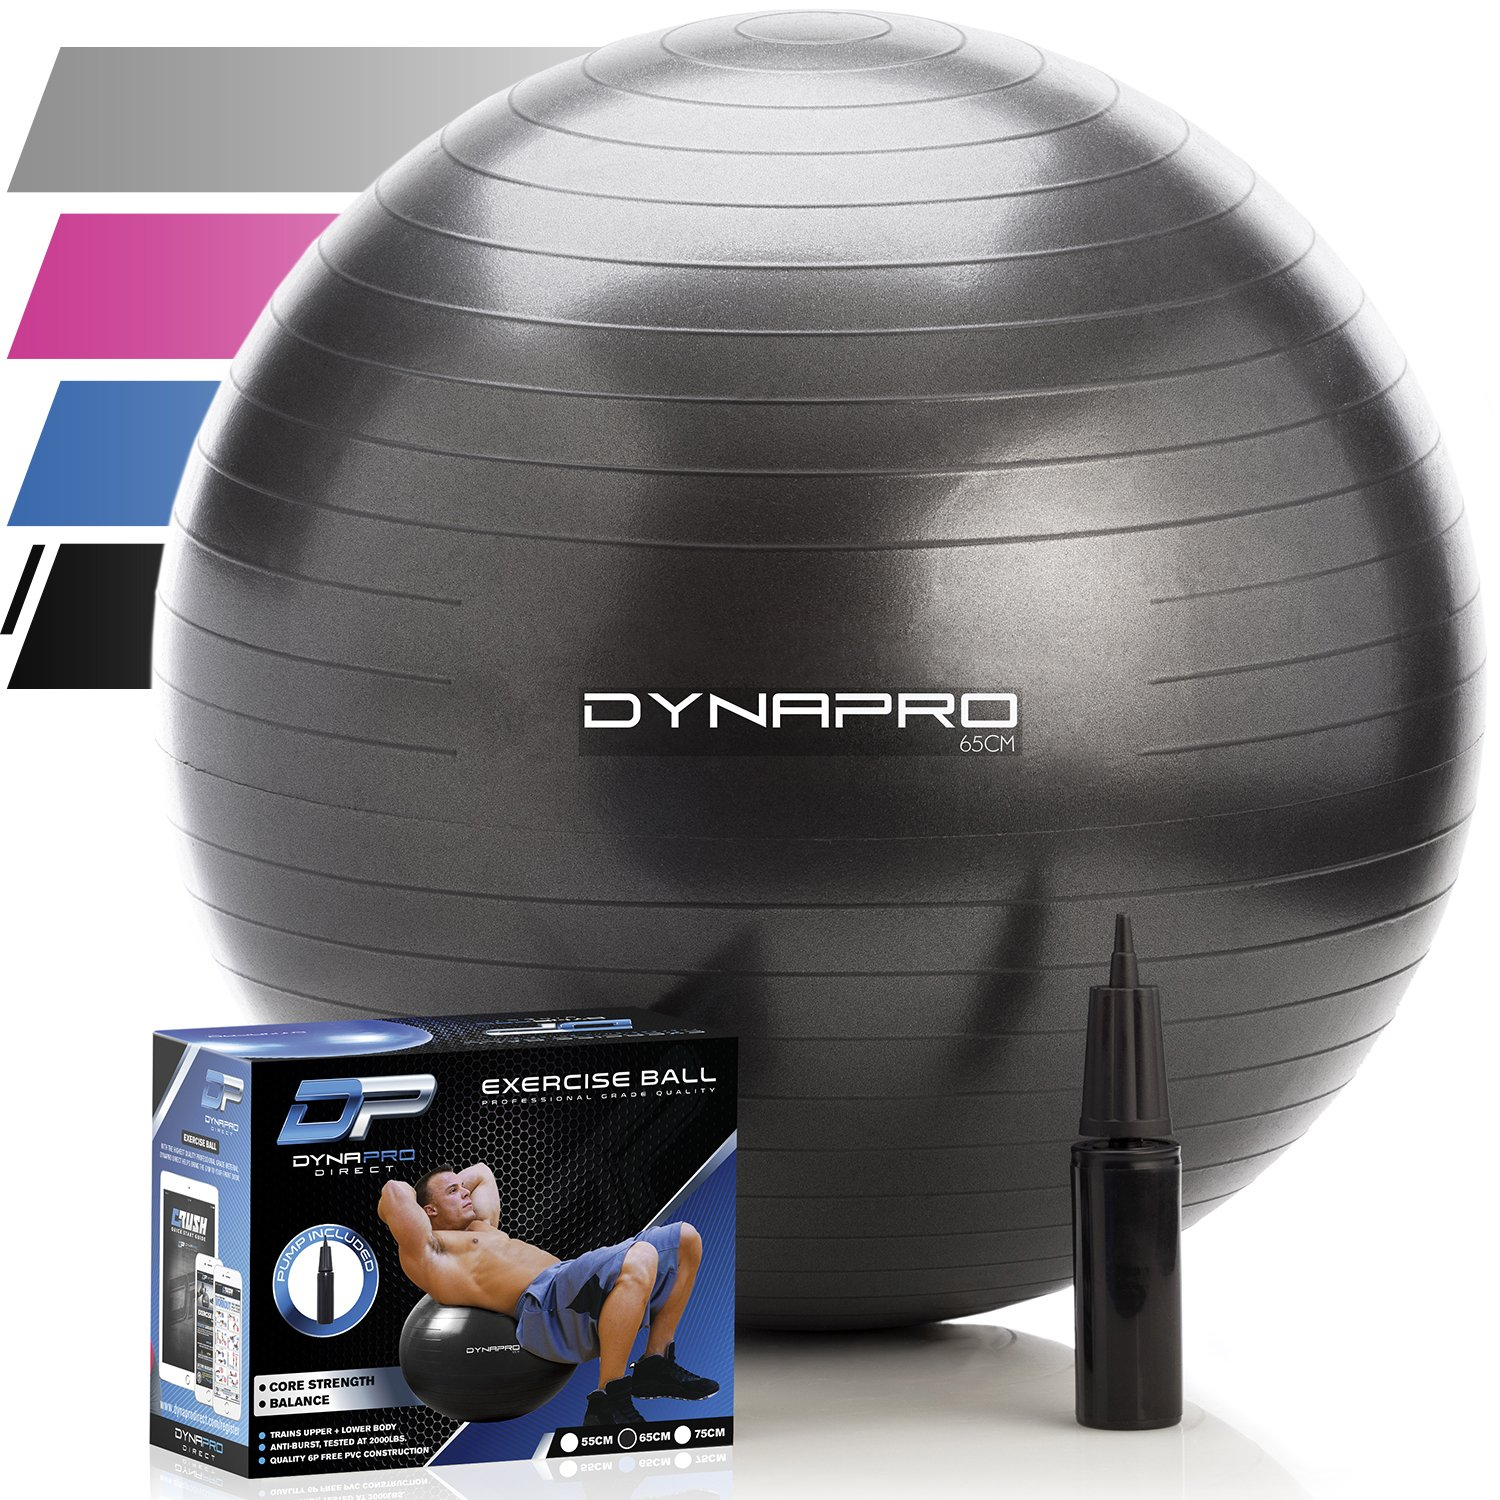 Amazon Best Sellers Best Exercise Balls & Accessories